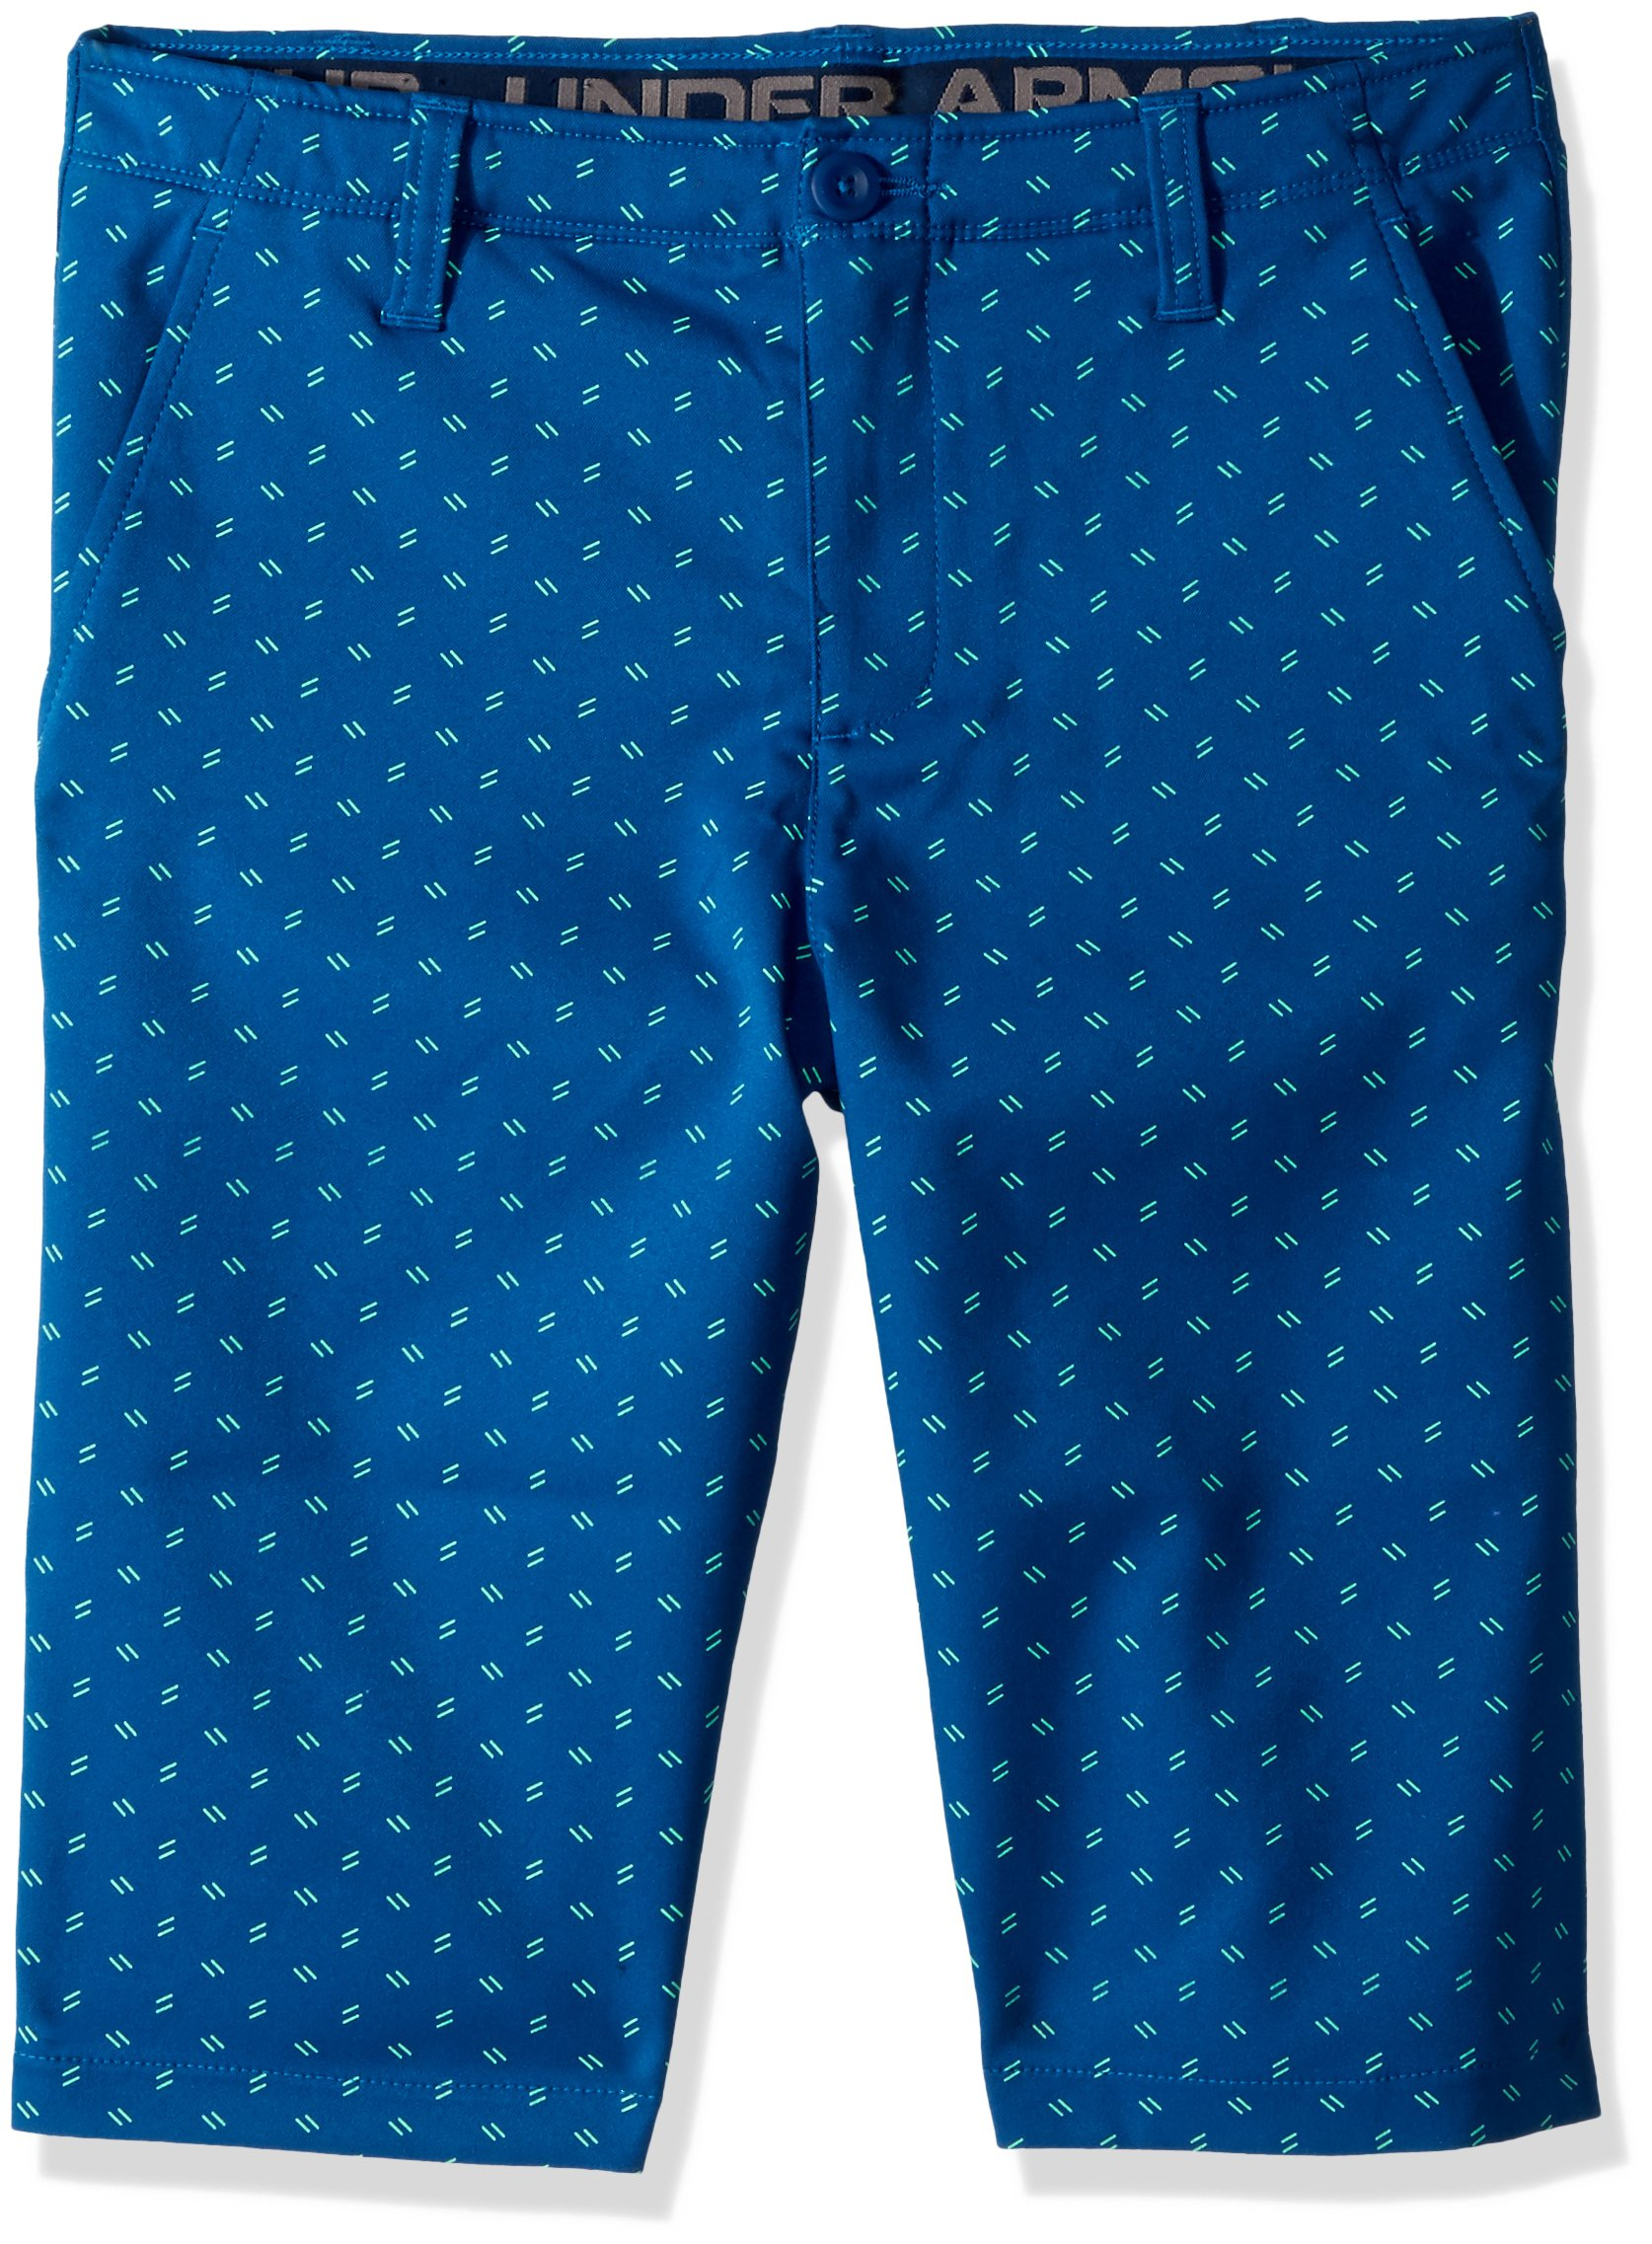 Under Armour Boys' Match Play Printed Shorts, Moroccan Blue (487)/Moroccan Blue,18